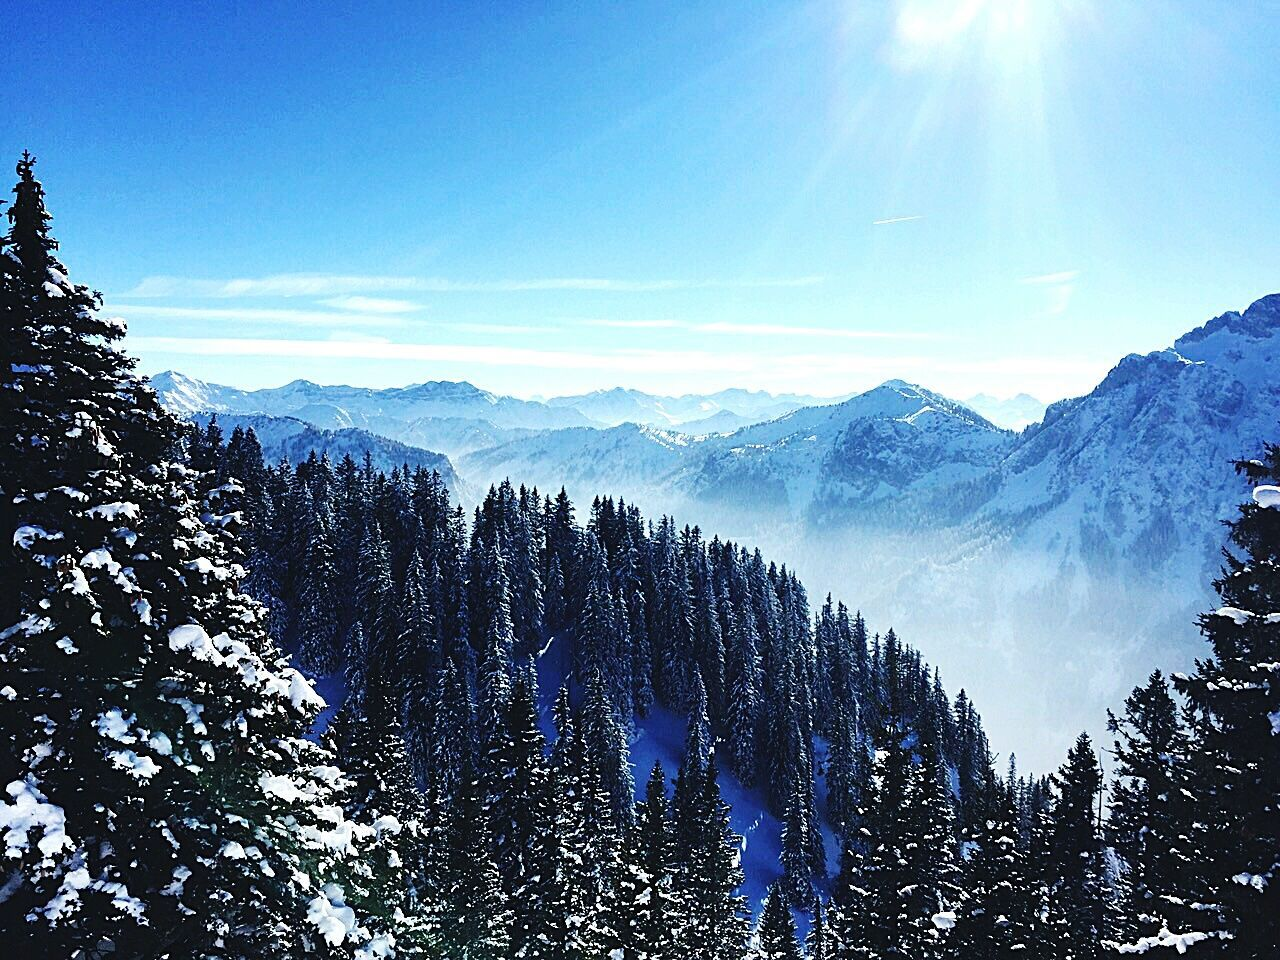 Scenic View Of Trees And Mountains Covered With Snow